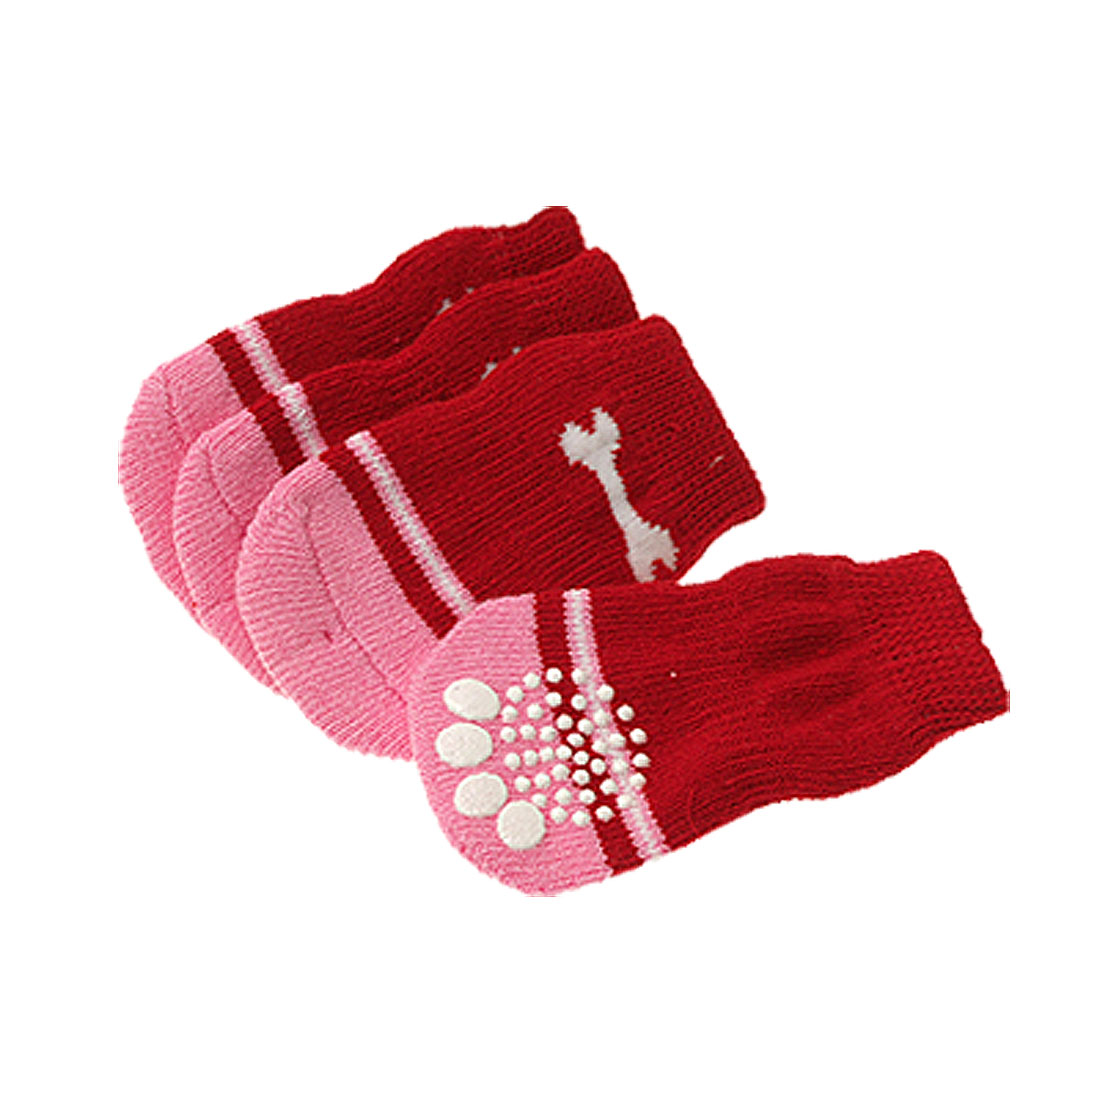 Puppy Dog Pet's Winter Comfy Socks Anti-slip Decoration Red 8.5 x 4.5cm